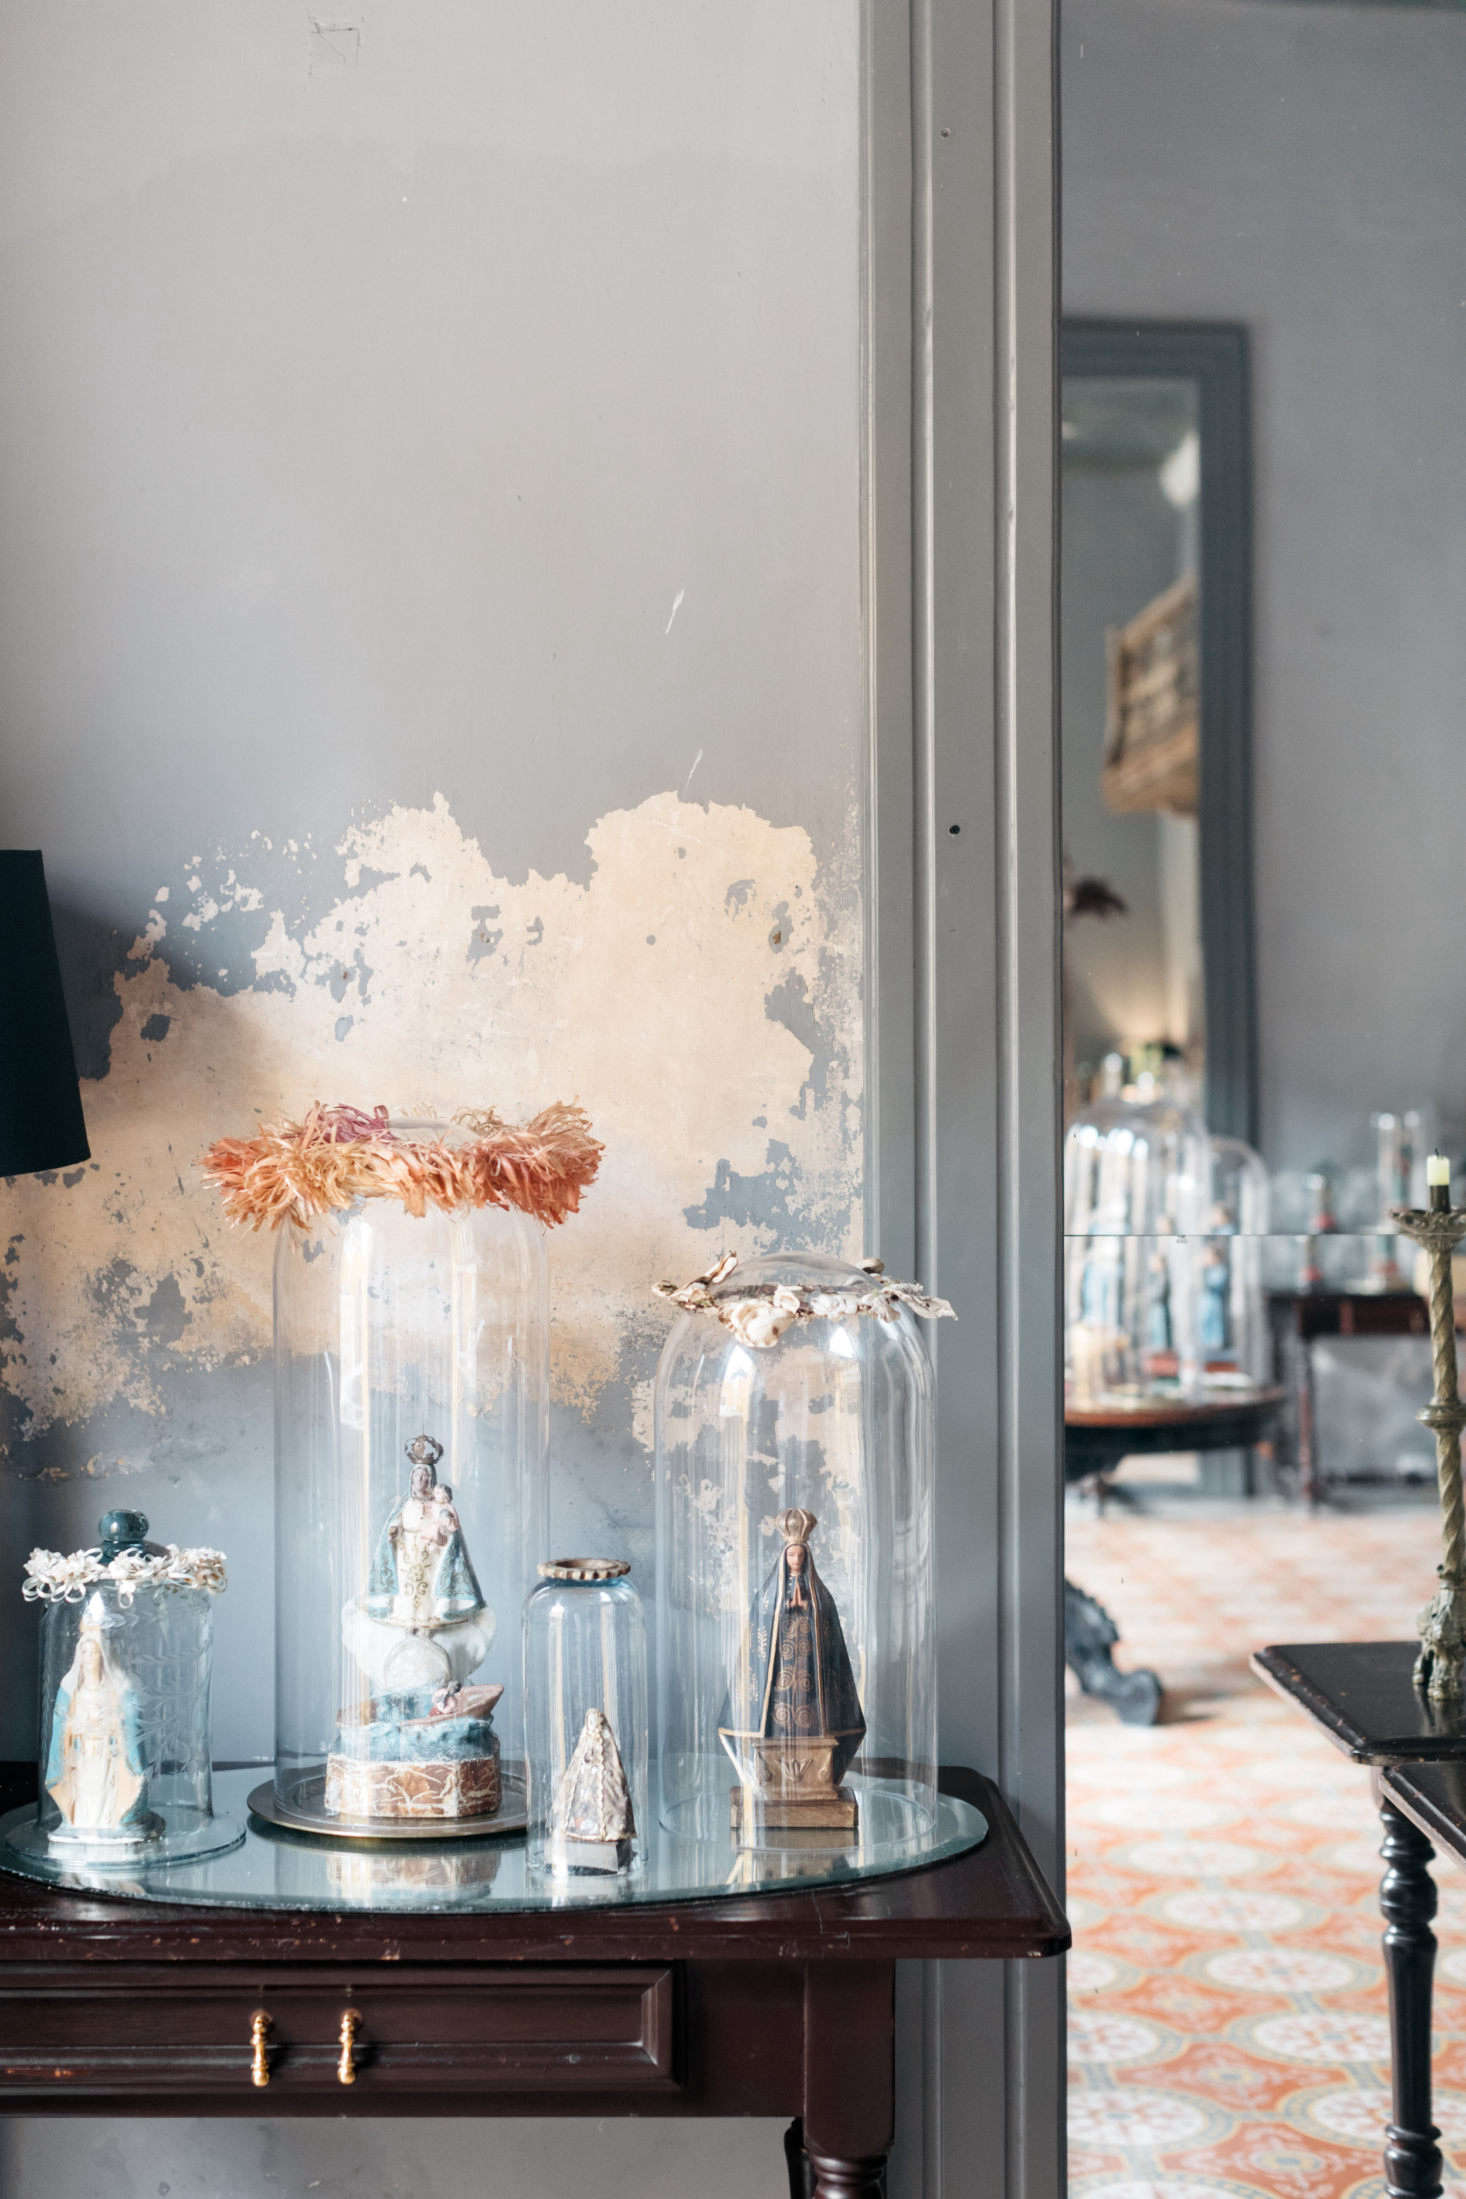 Antique figurines of saints and virgins are enshrined in glass, a nod to the city&#8